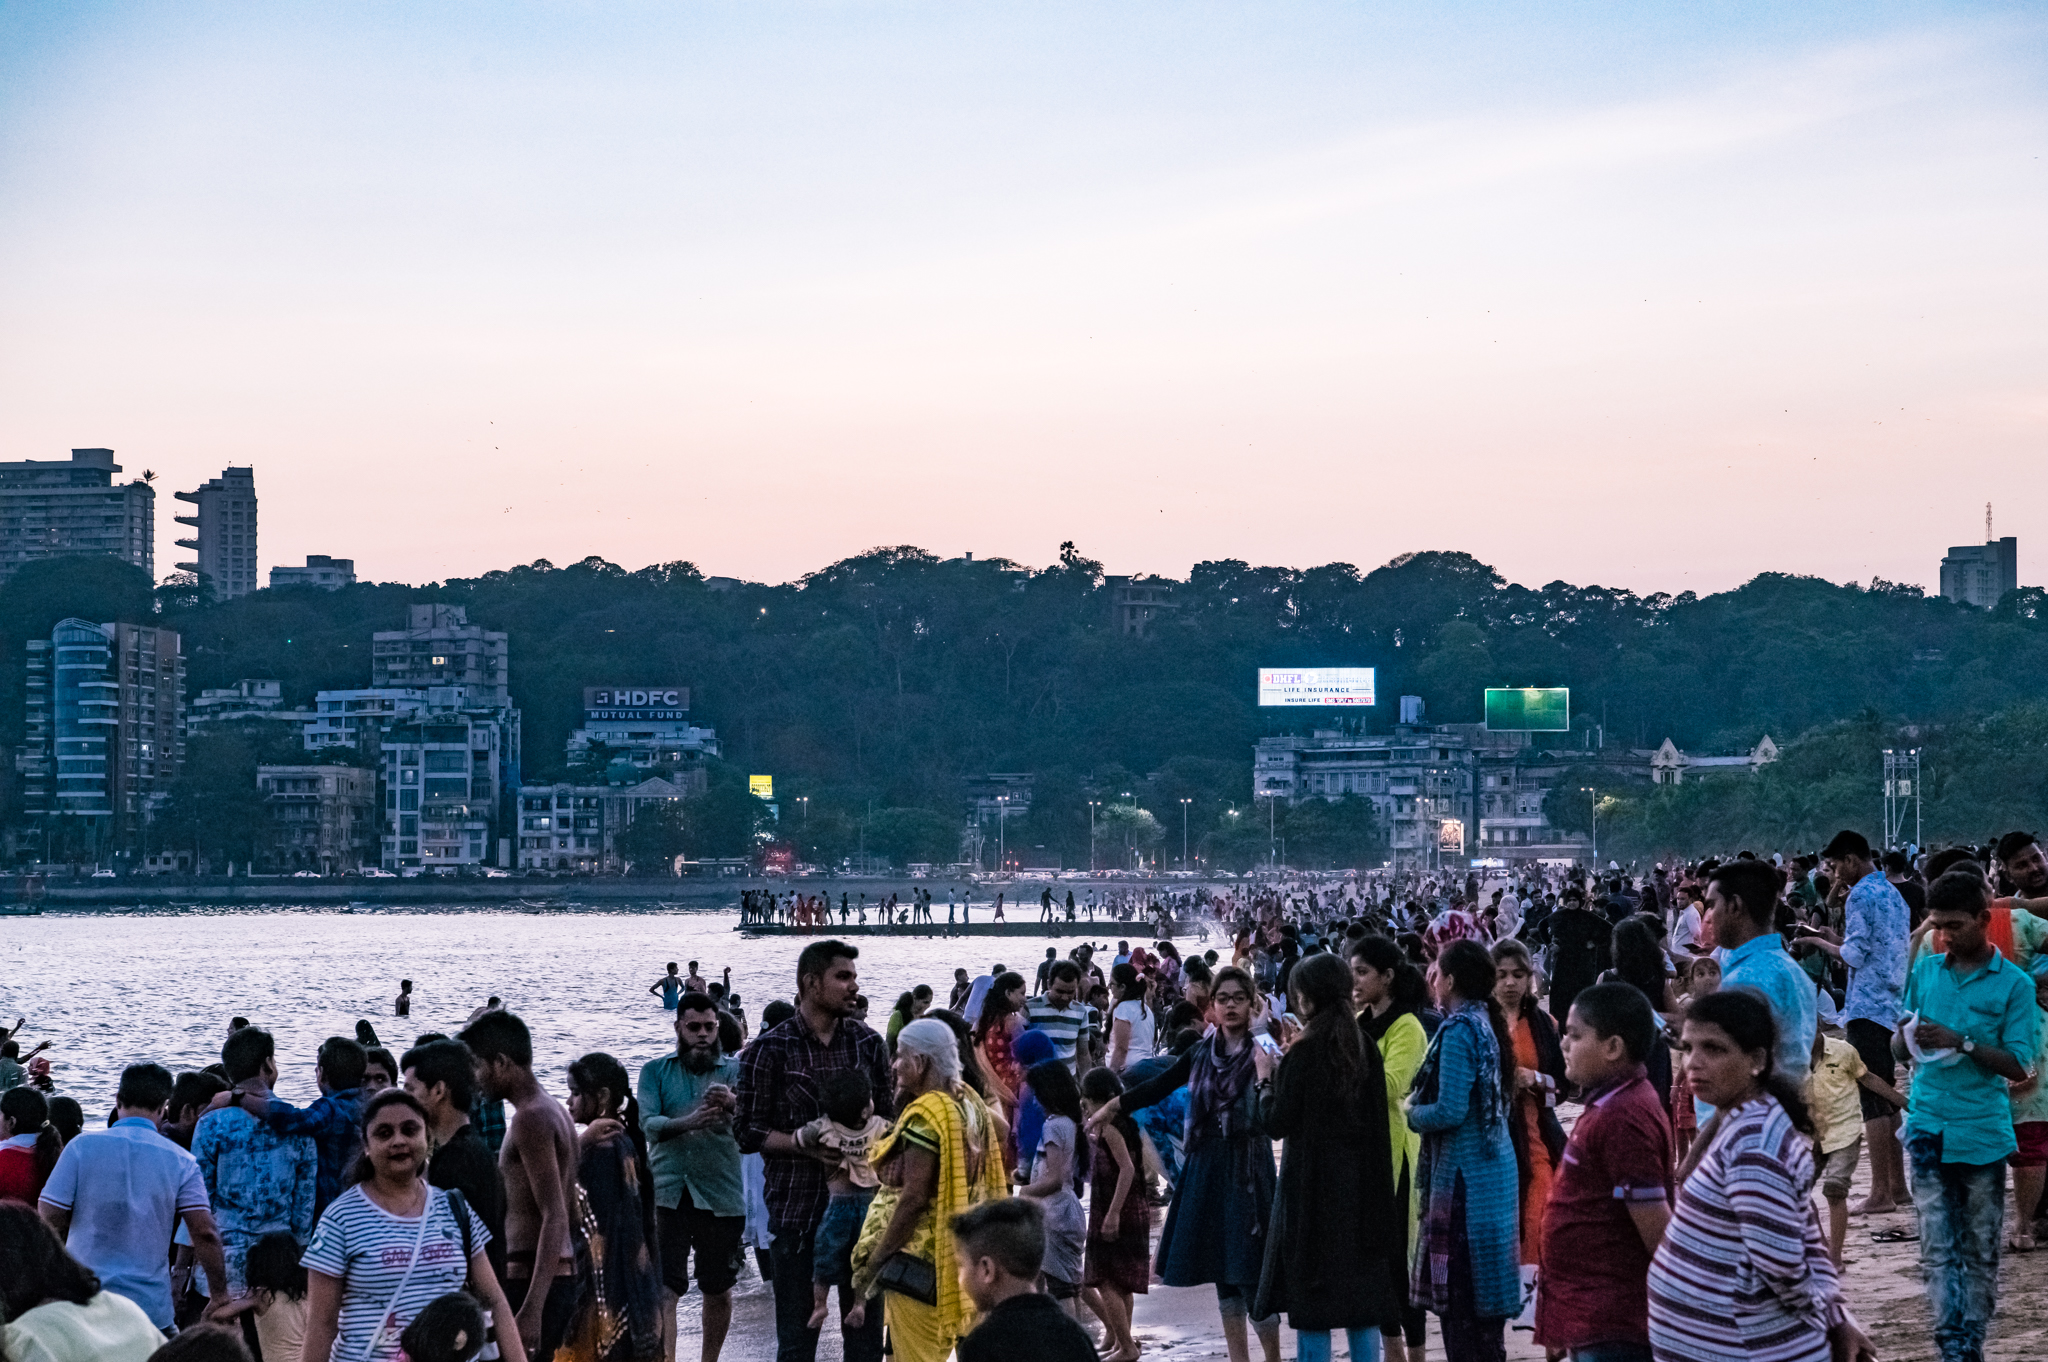 thetravelhub_india_girgoan chowpatty crowd.jpg